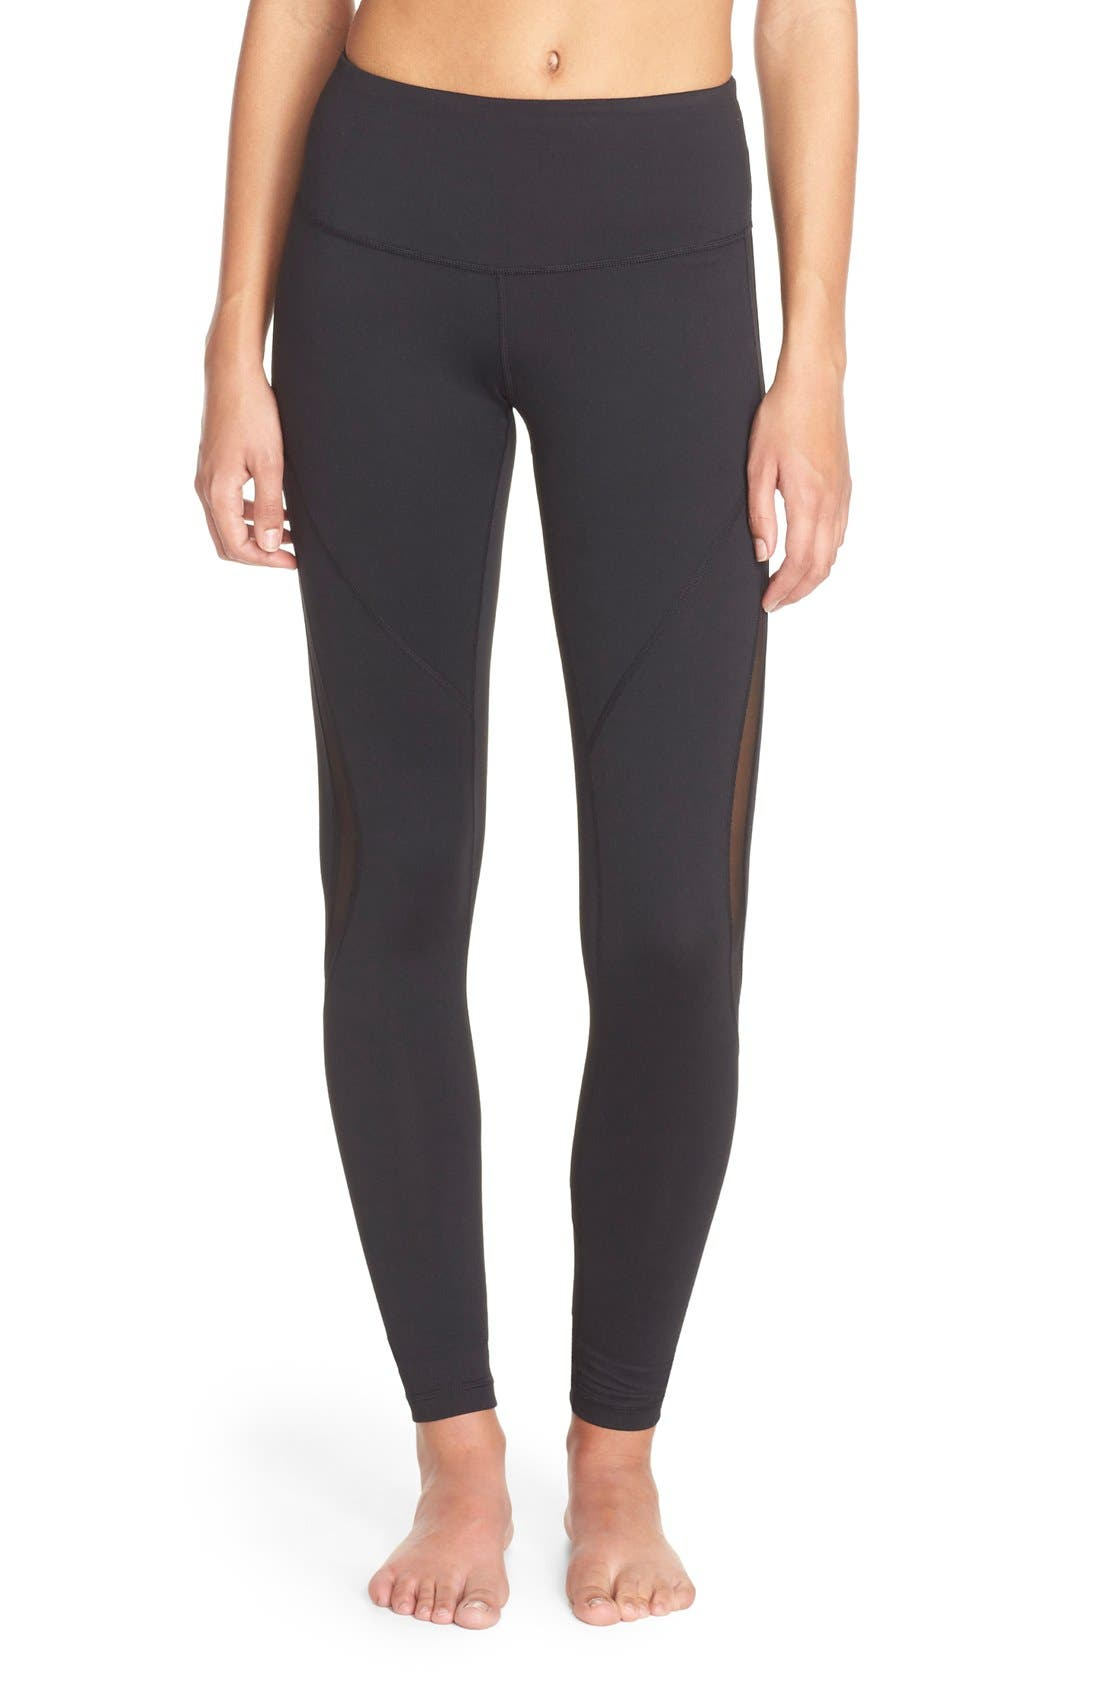 Alternate Image 2  - Zella Sheer to Here High Waist Leggings